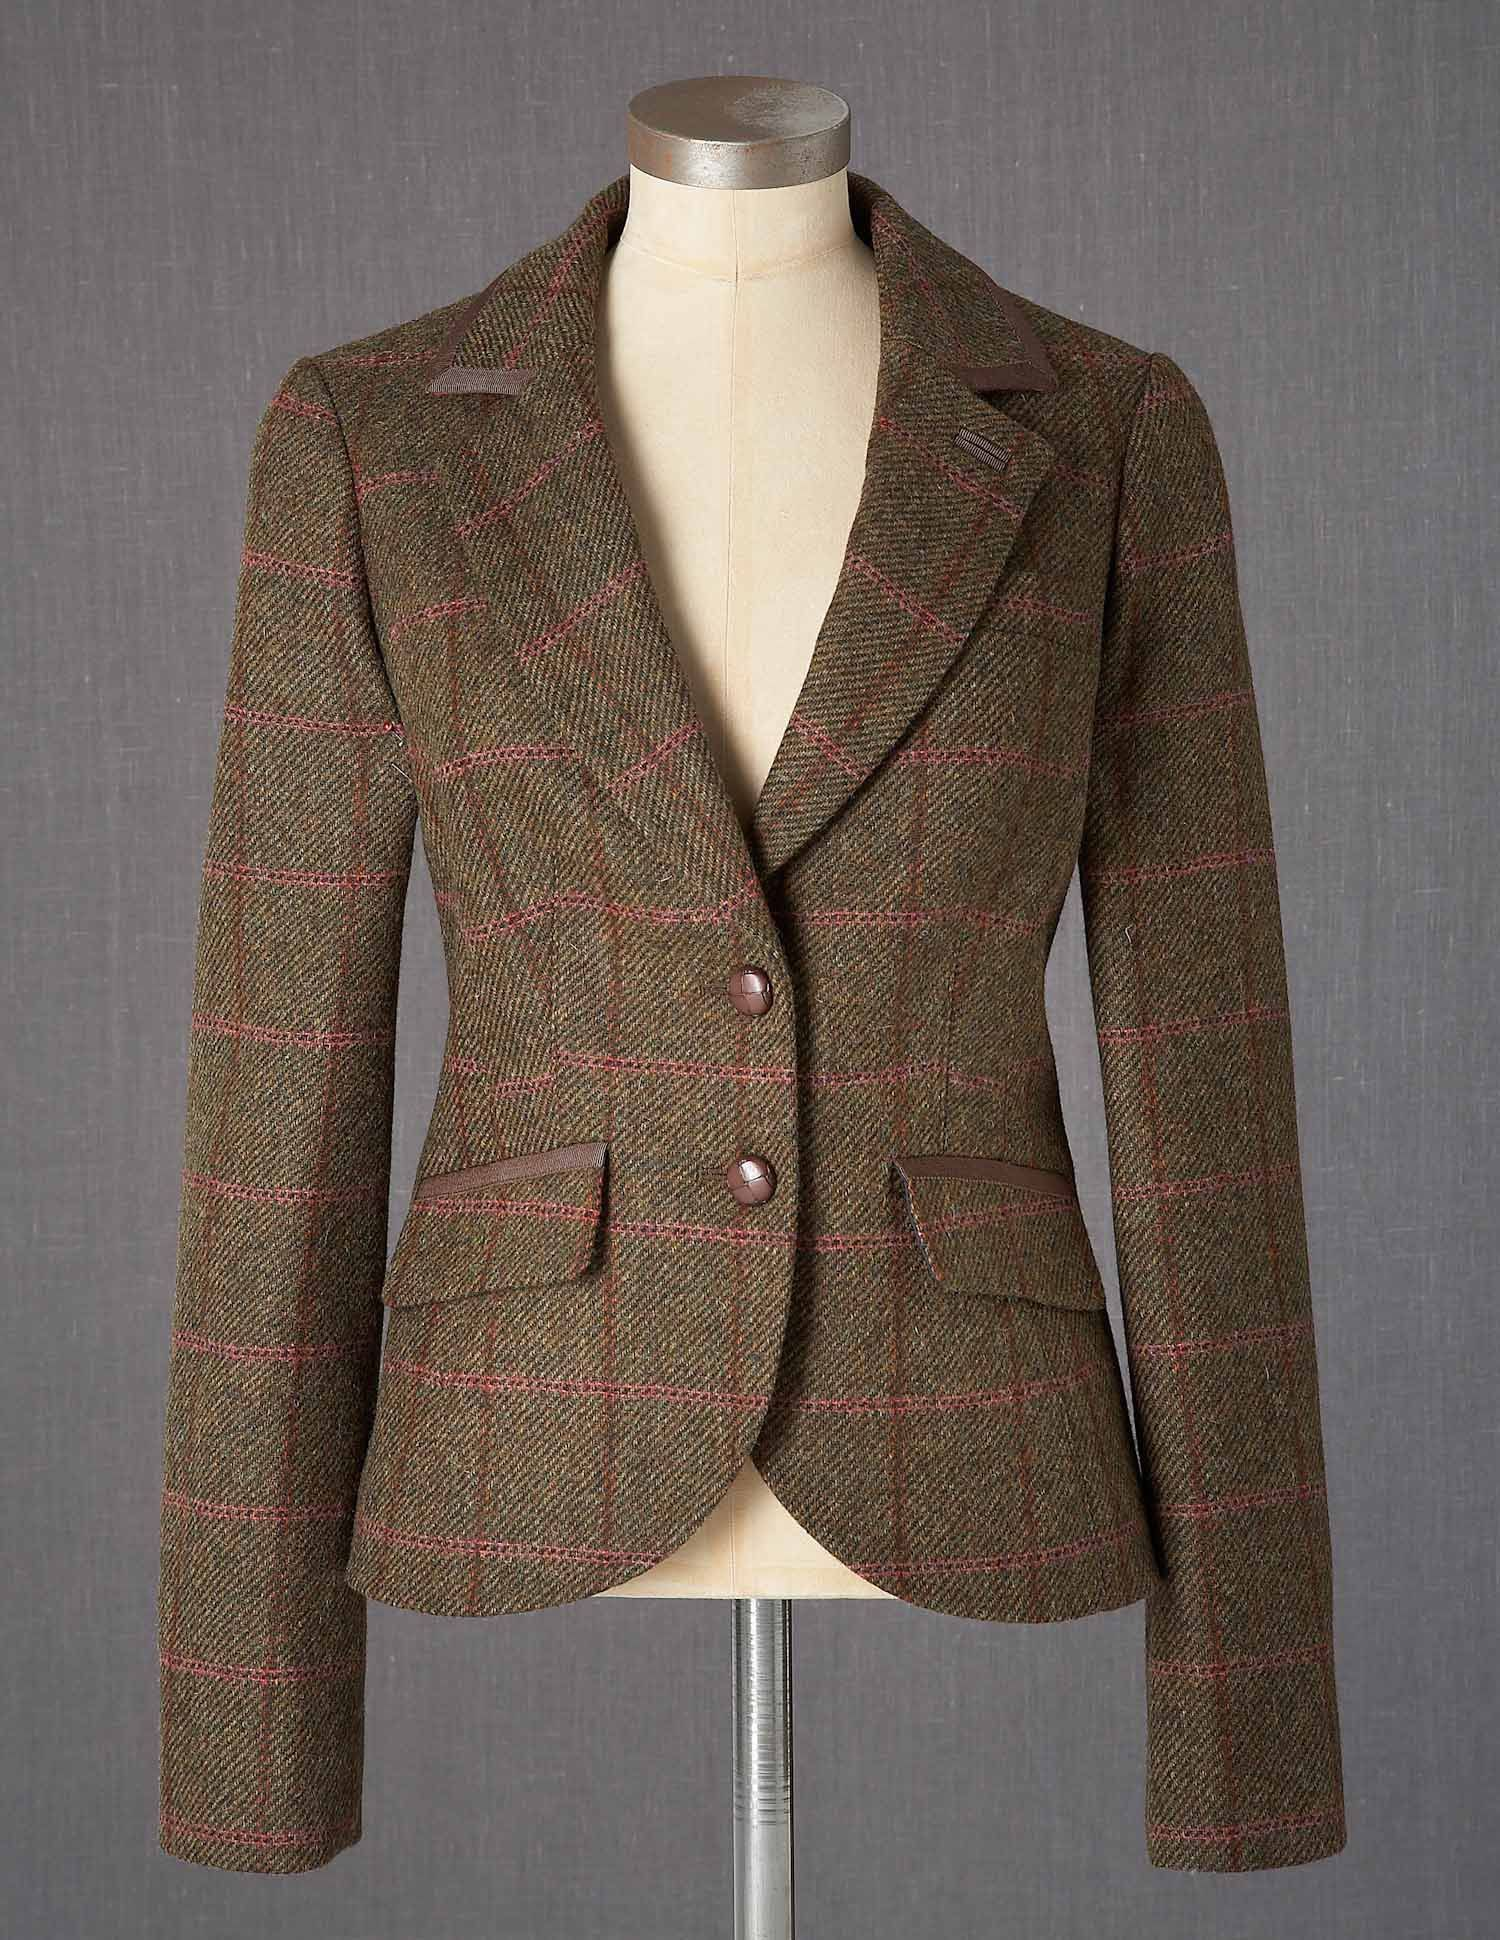 British Tweed Blazer WE396 Jackets at Boden | Style | Pinterest ...